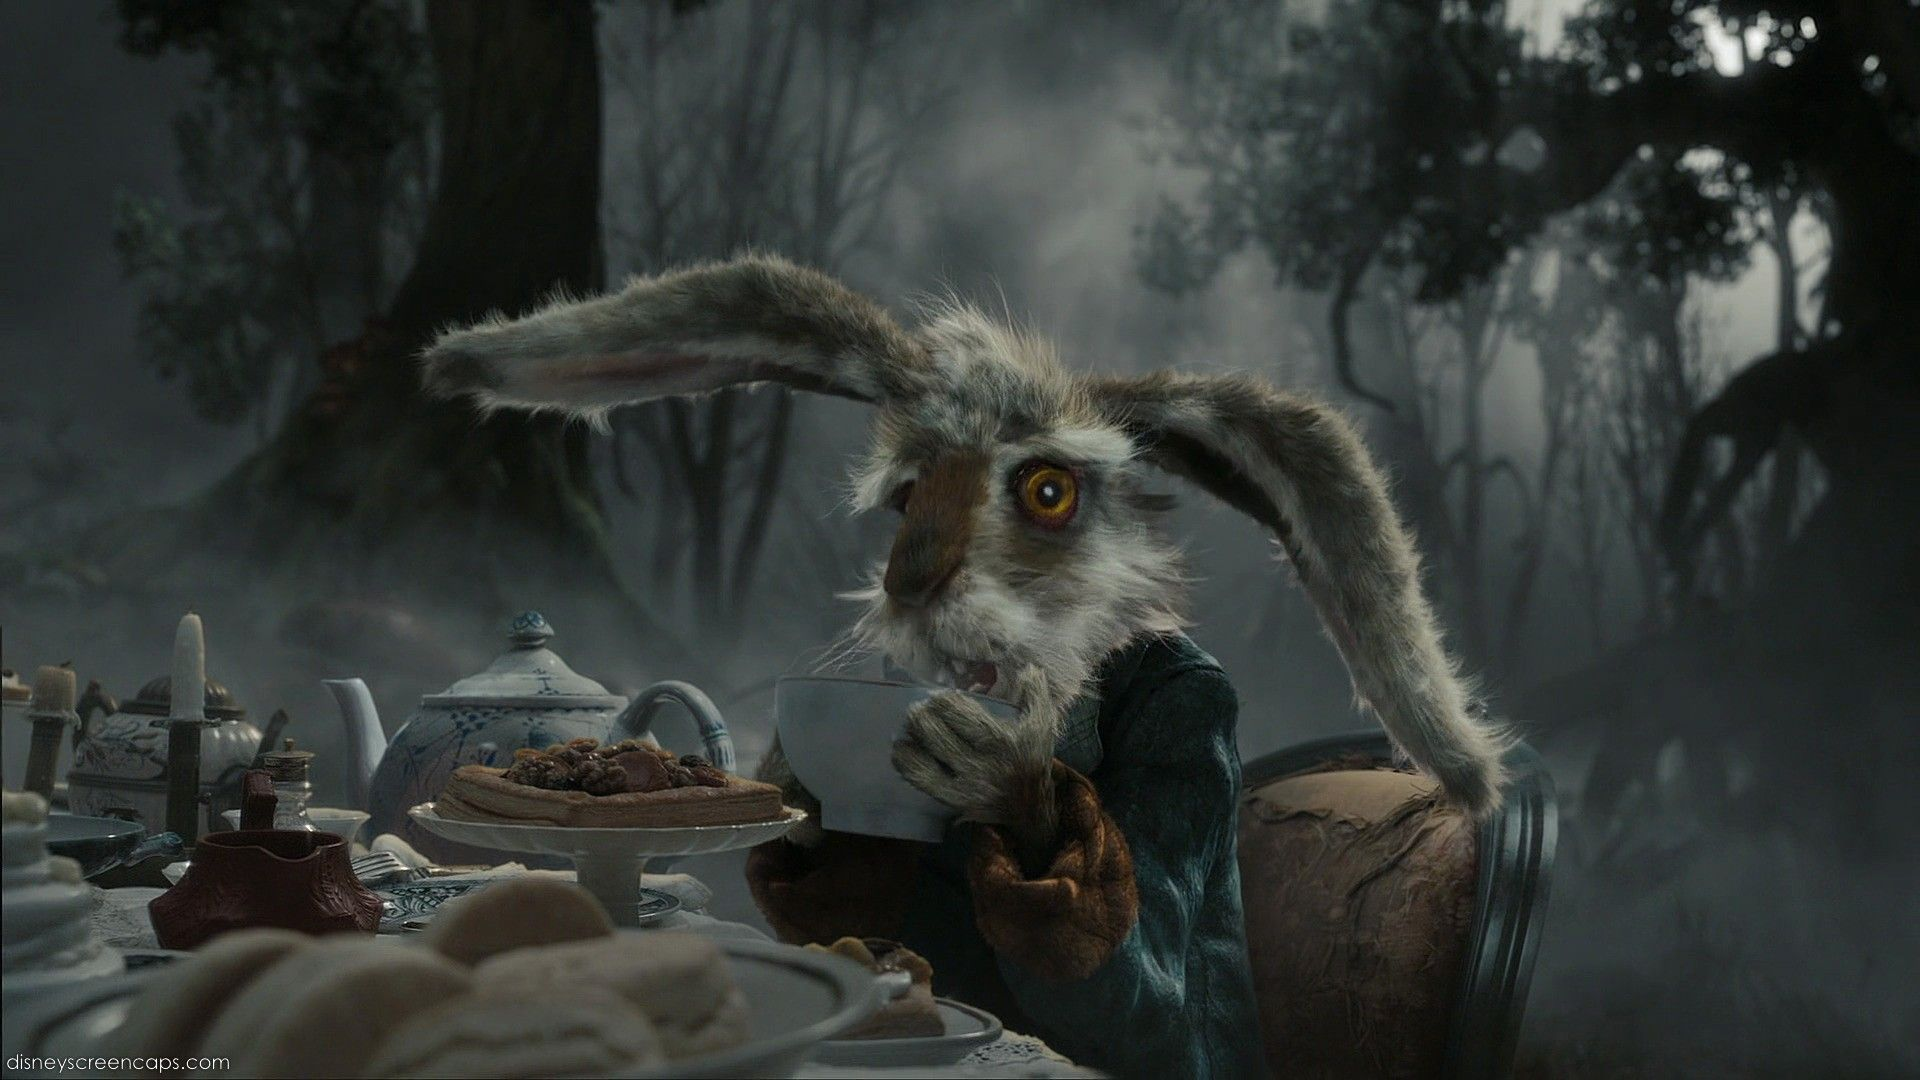 The Mad March Hare From Tim Burtons Alice In Wonderland Is A Very